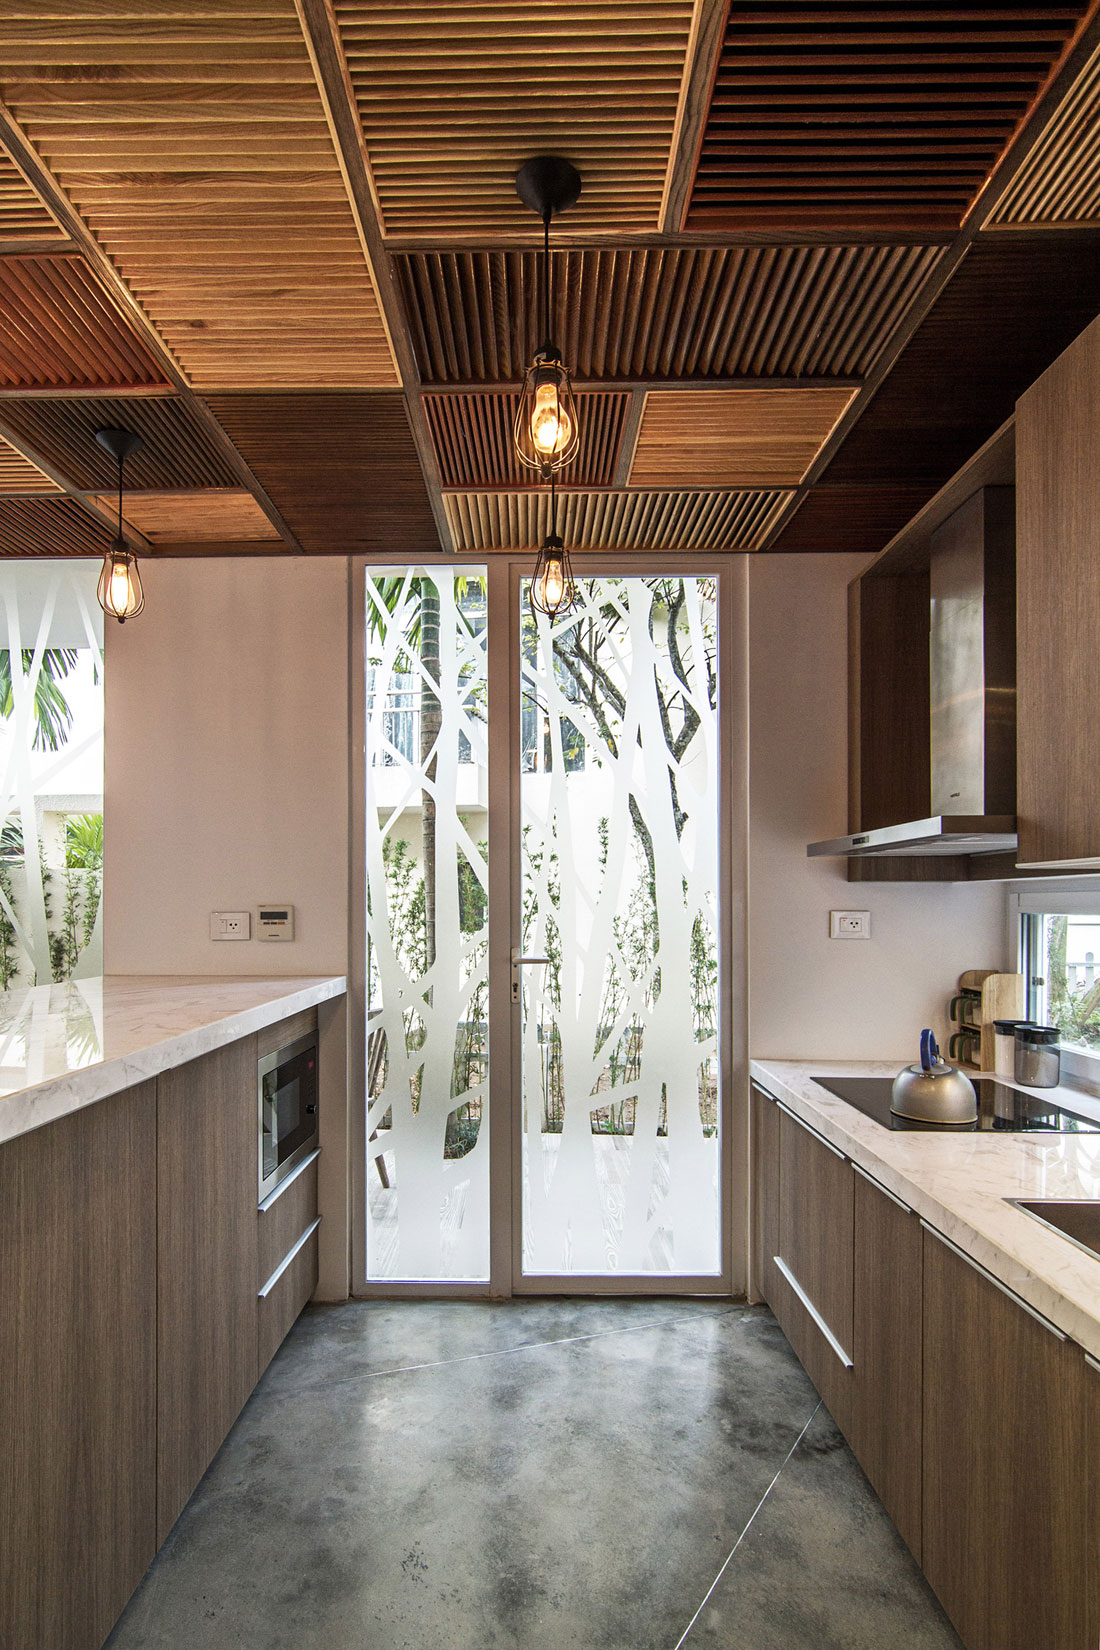 EPV Semi-Detached House Located in Ecopark Green Urban Area, Vietnam by AHL architects associates-08